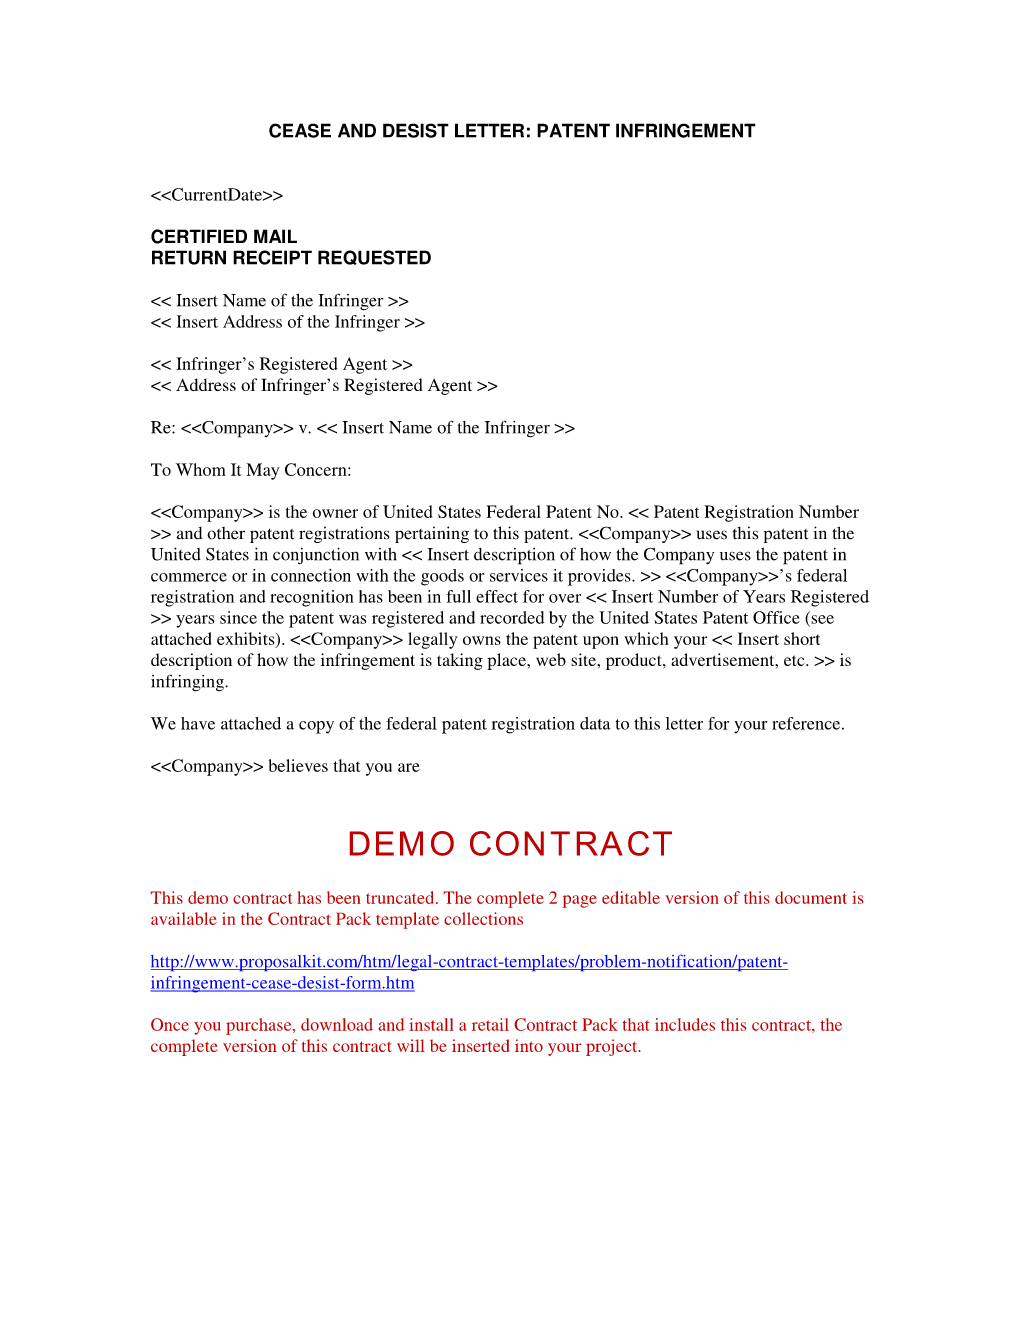 Cease and Desist Letter Template - Fresh Cease and Desist Template Your Template Collection